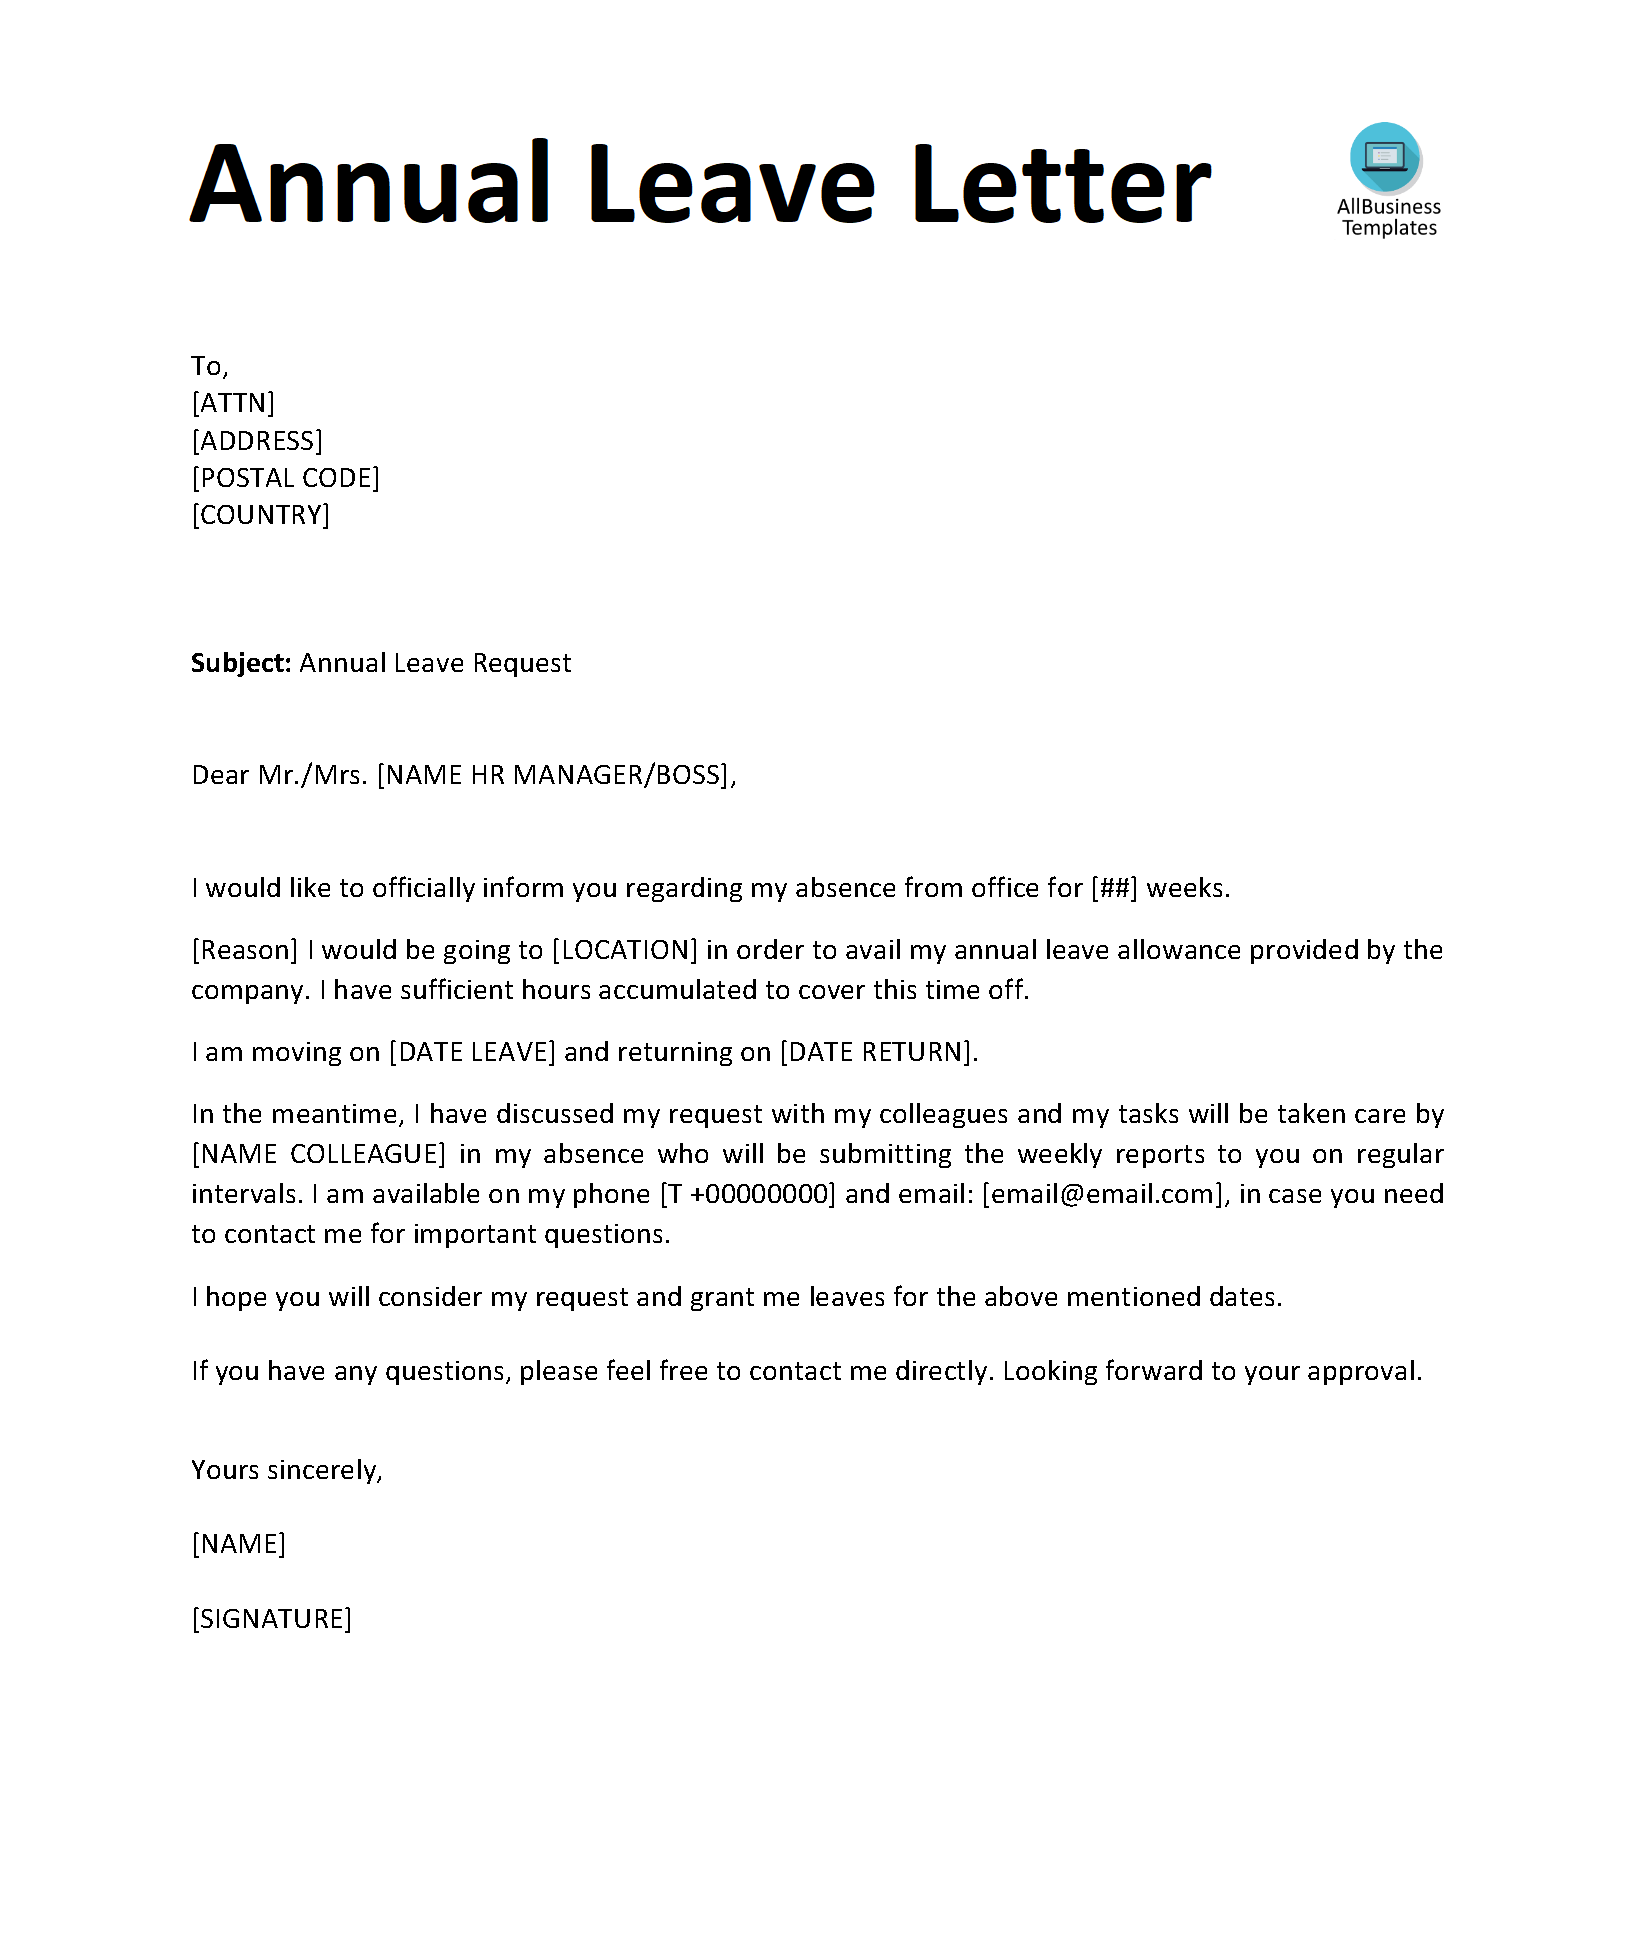 Annual Leave Letter Templates At Allbusinesstemplates Com Lettering Download Letter Templates Lettering